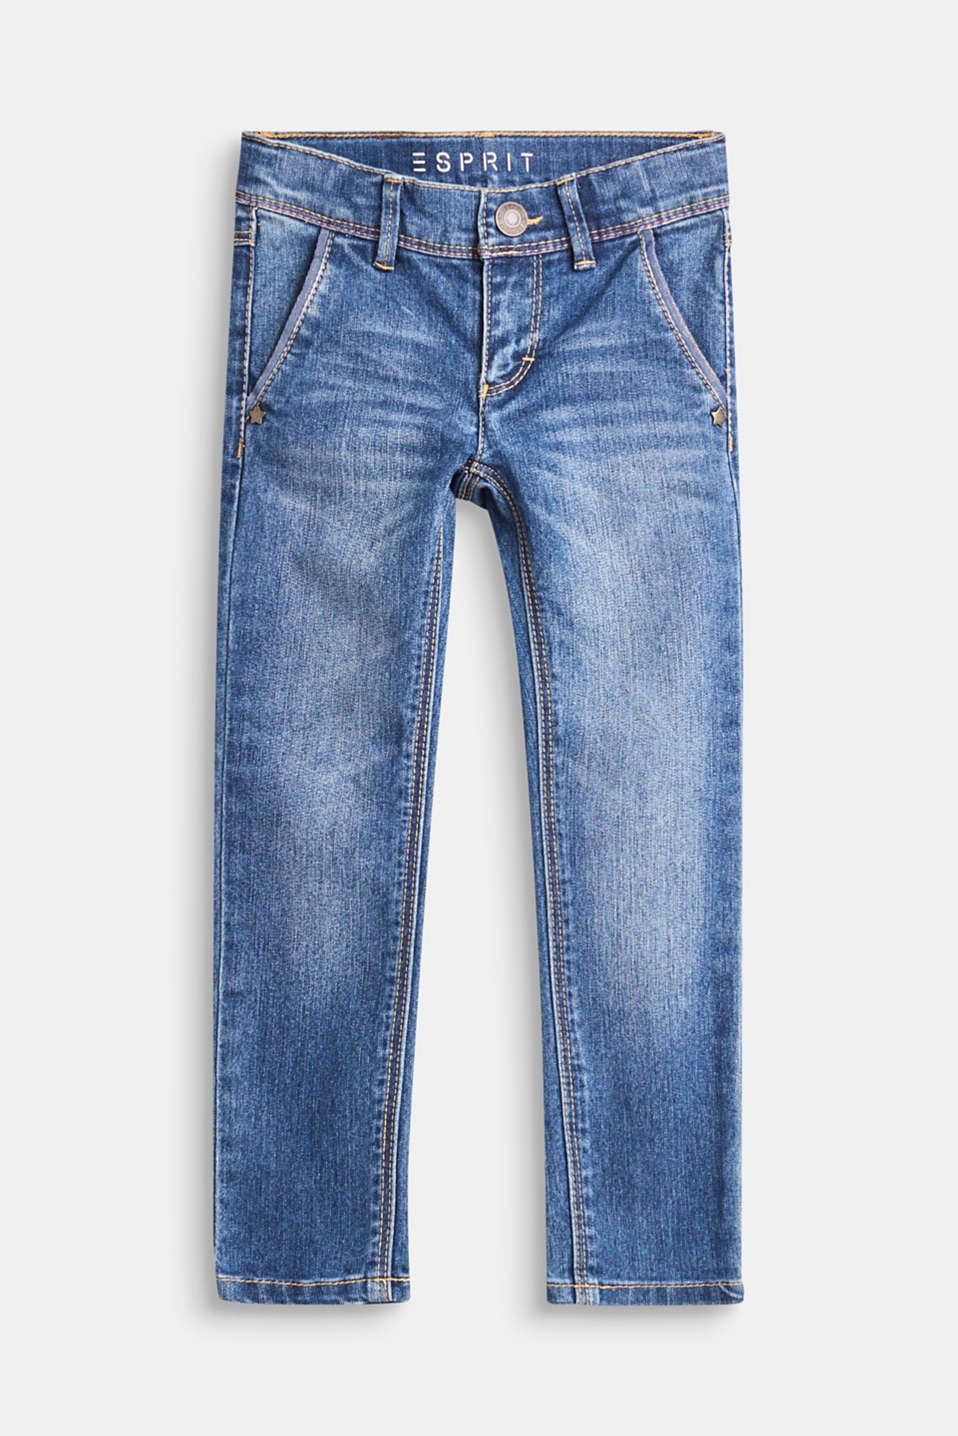 Esprit - Stretch jeans with glittery pockets, adjustable waistband